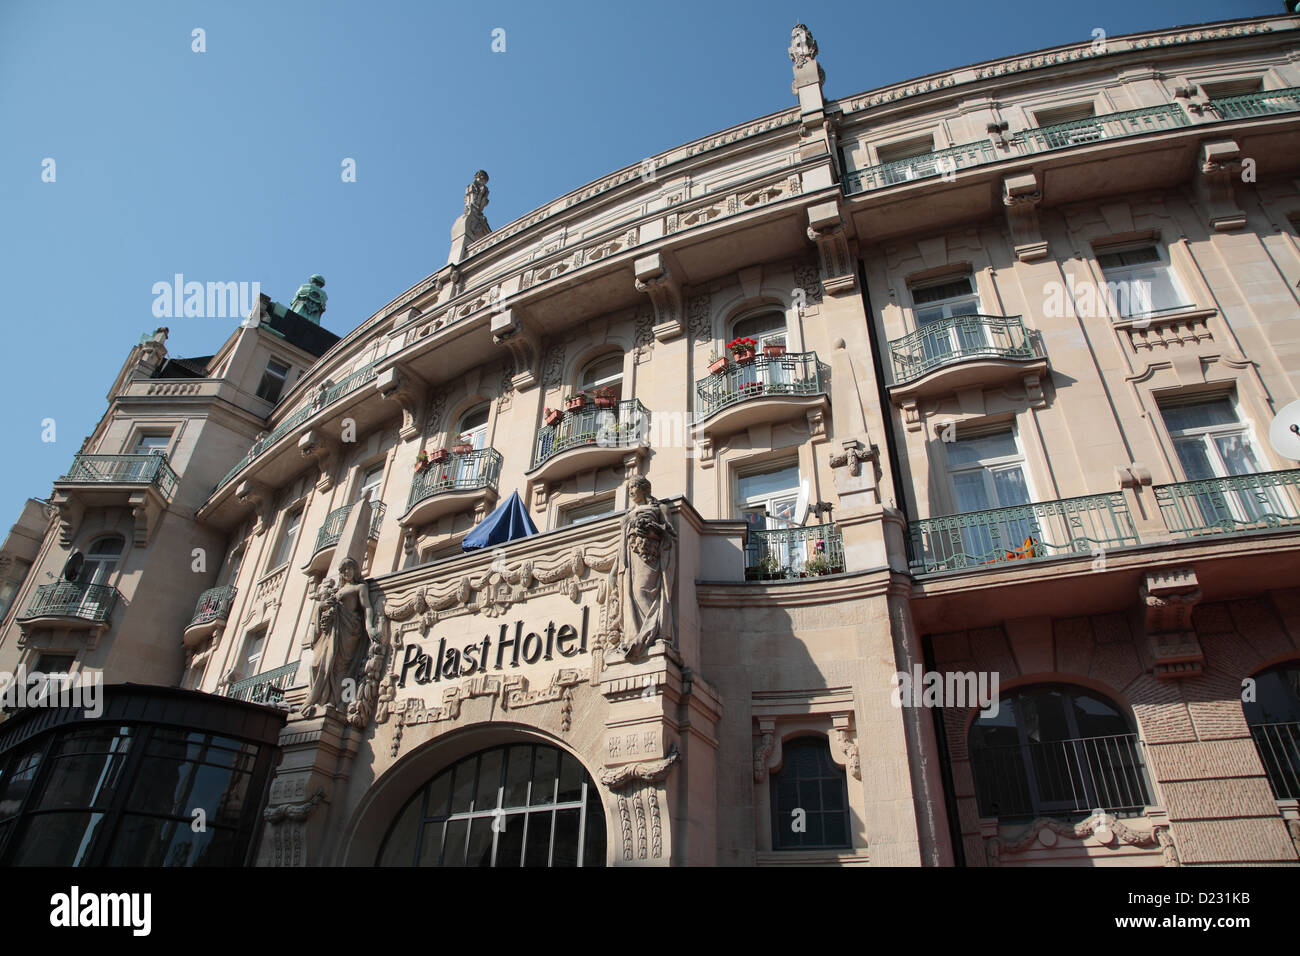 Art Nouveau Palace Hotel Wiesbaden Germany Art Nouveau Facade Of The Palace Hotel Stock